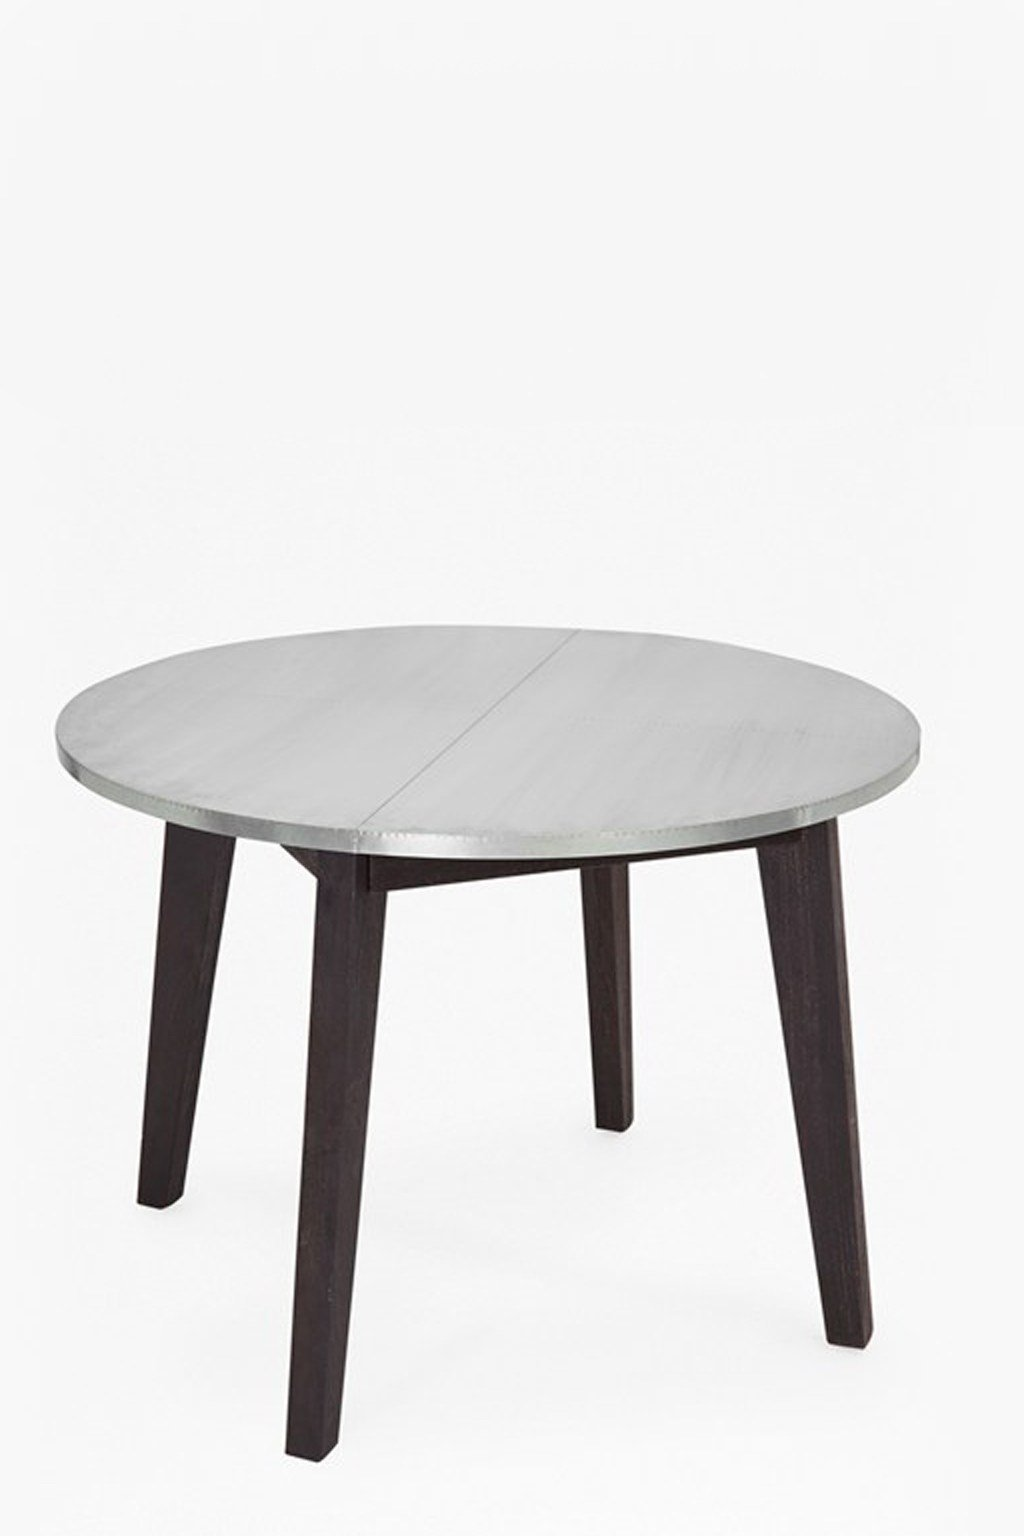 Zinc dining room table